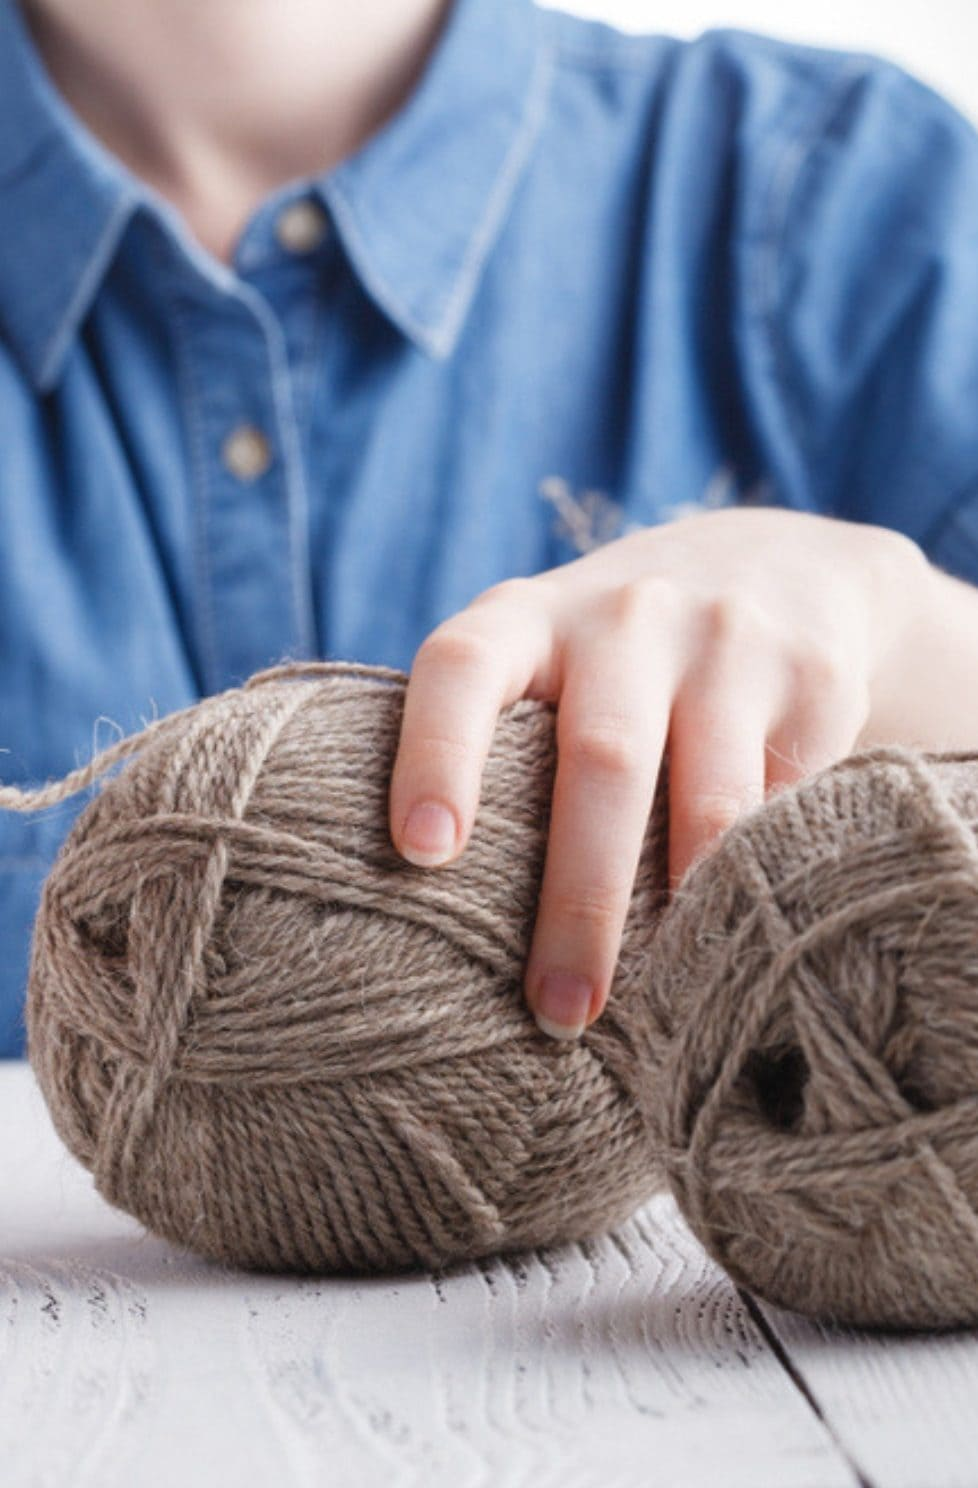 How To Knit With Two Strands Of Yarn Together